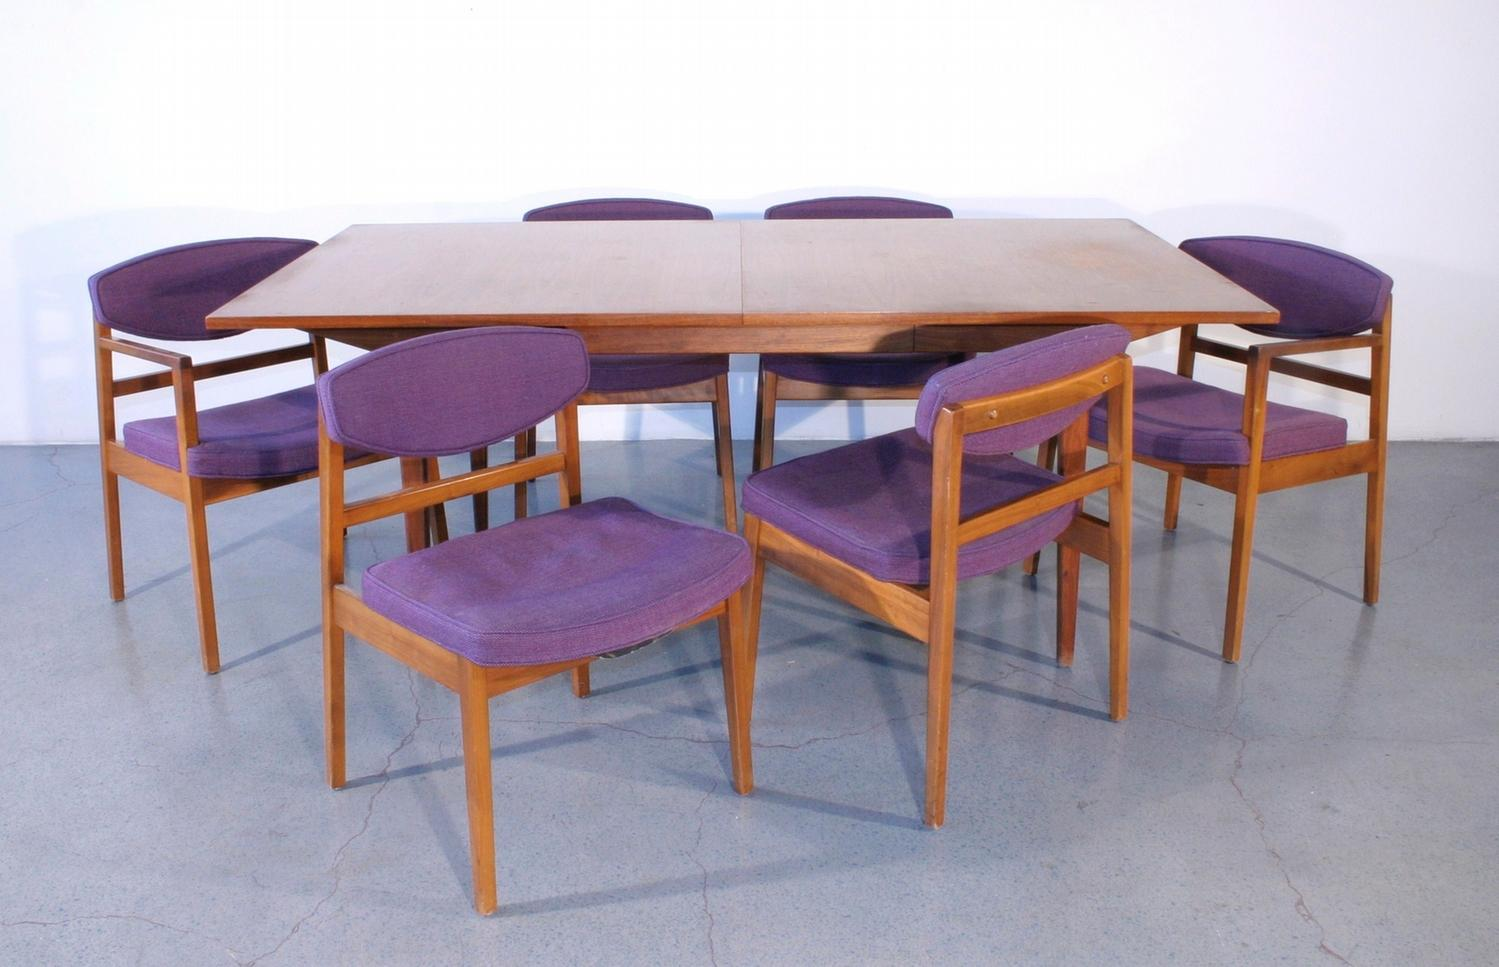 George Nelson For Herman Miller Dining Table With 6 Chairs C 1950 Loading Zoom